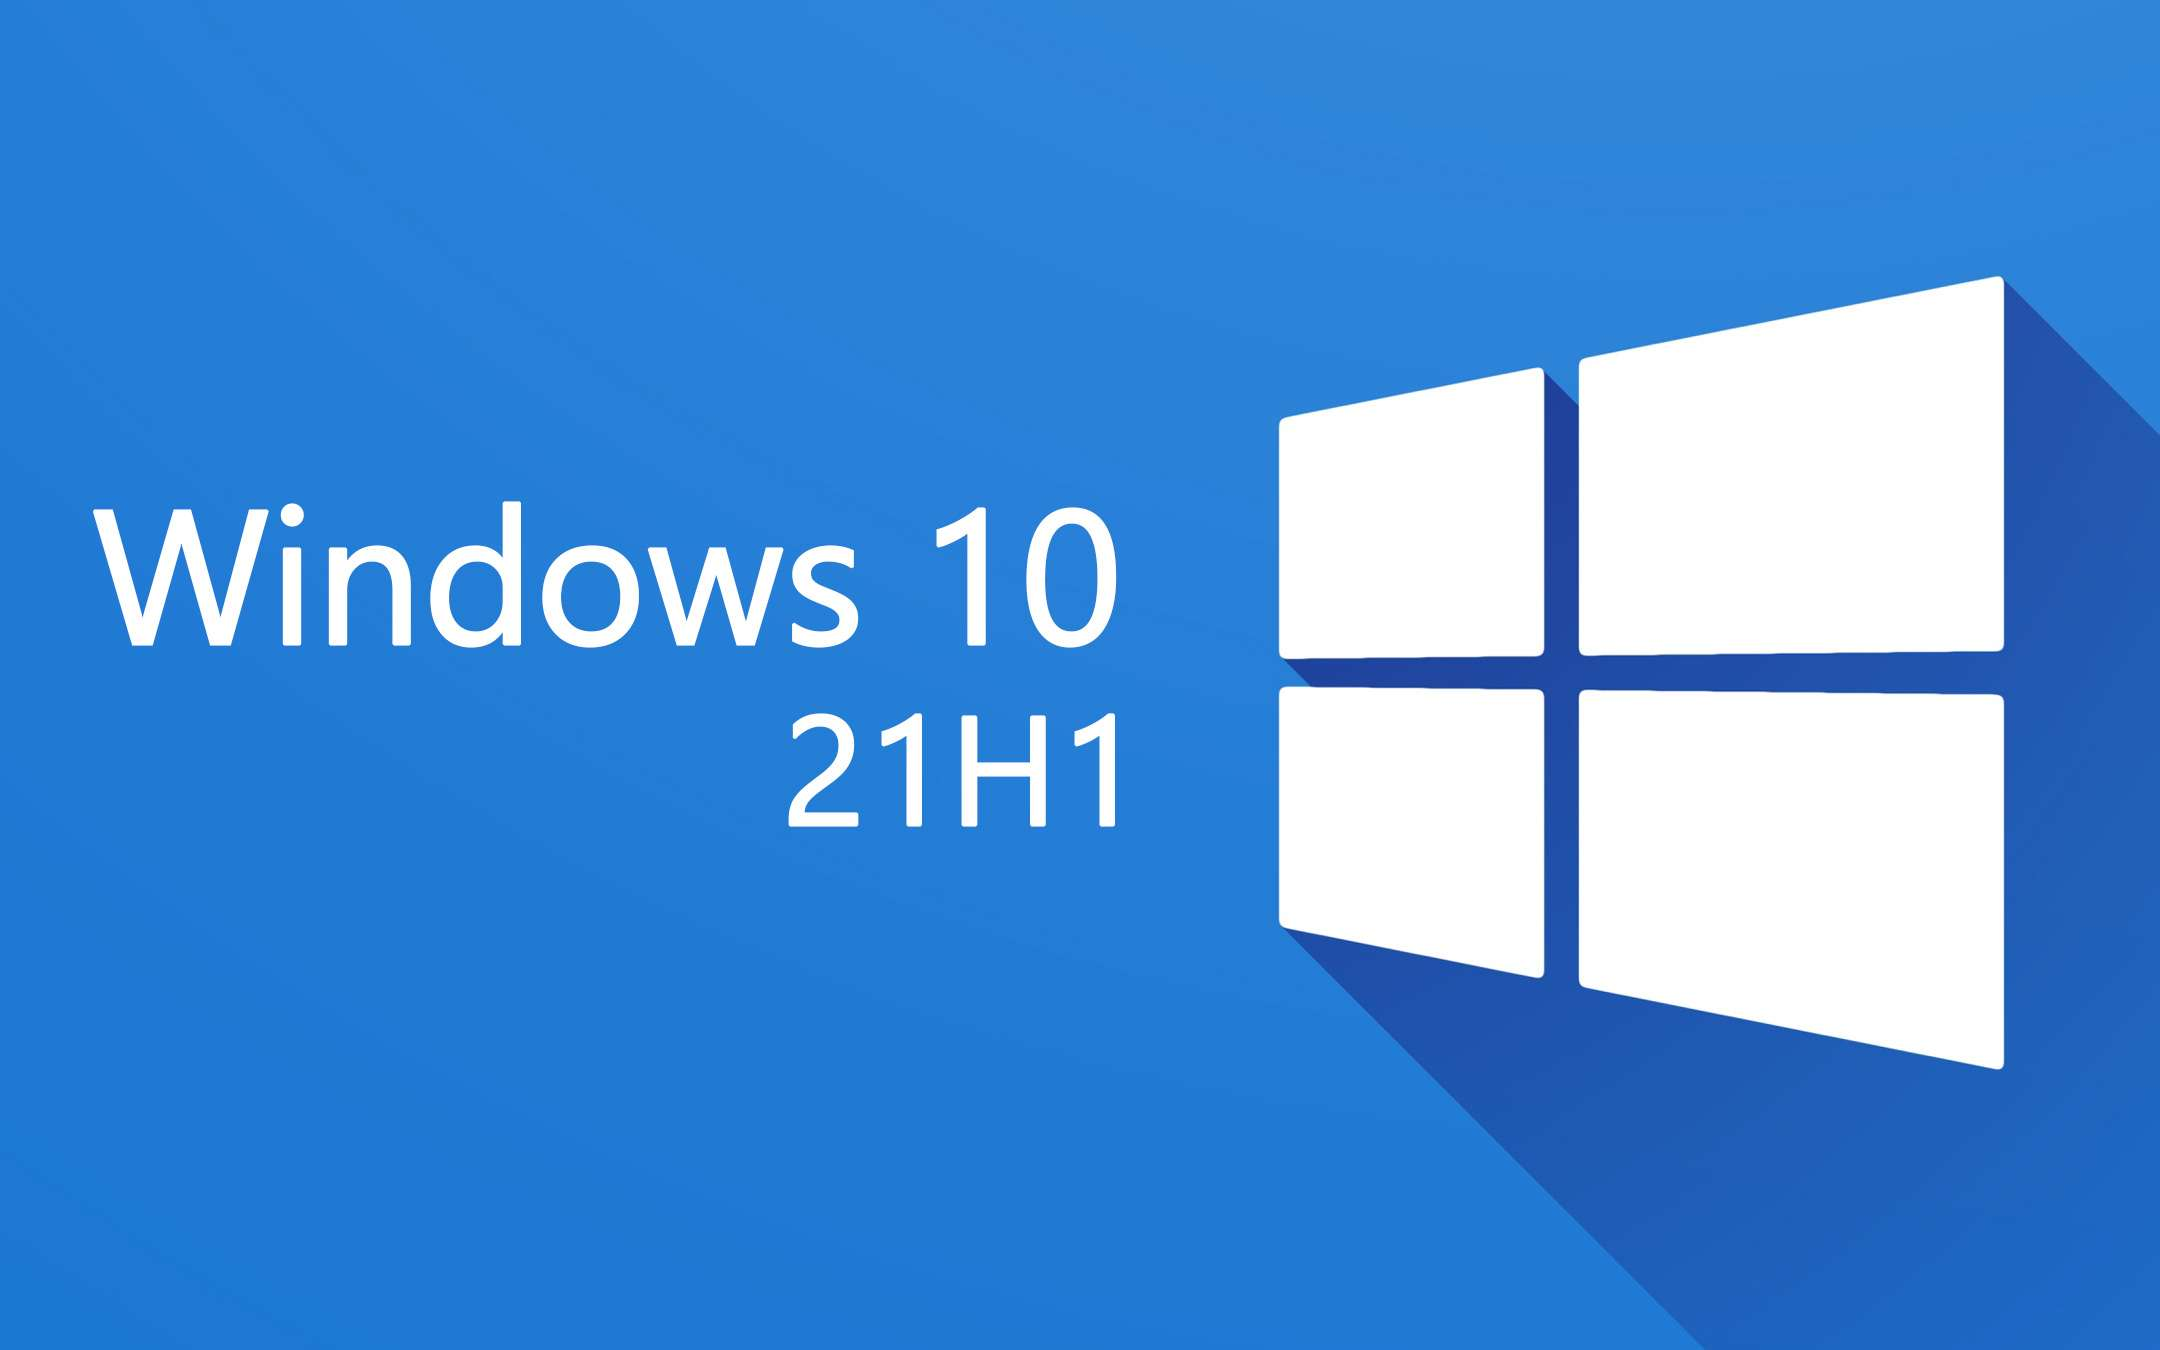 Windows 10 21H1: Microsoft is almost ready to launch